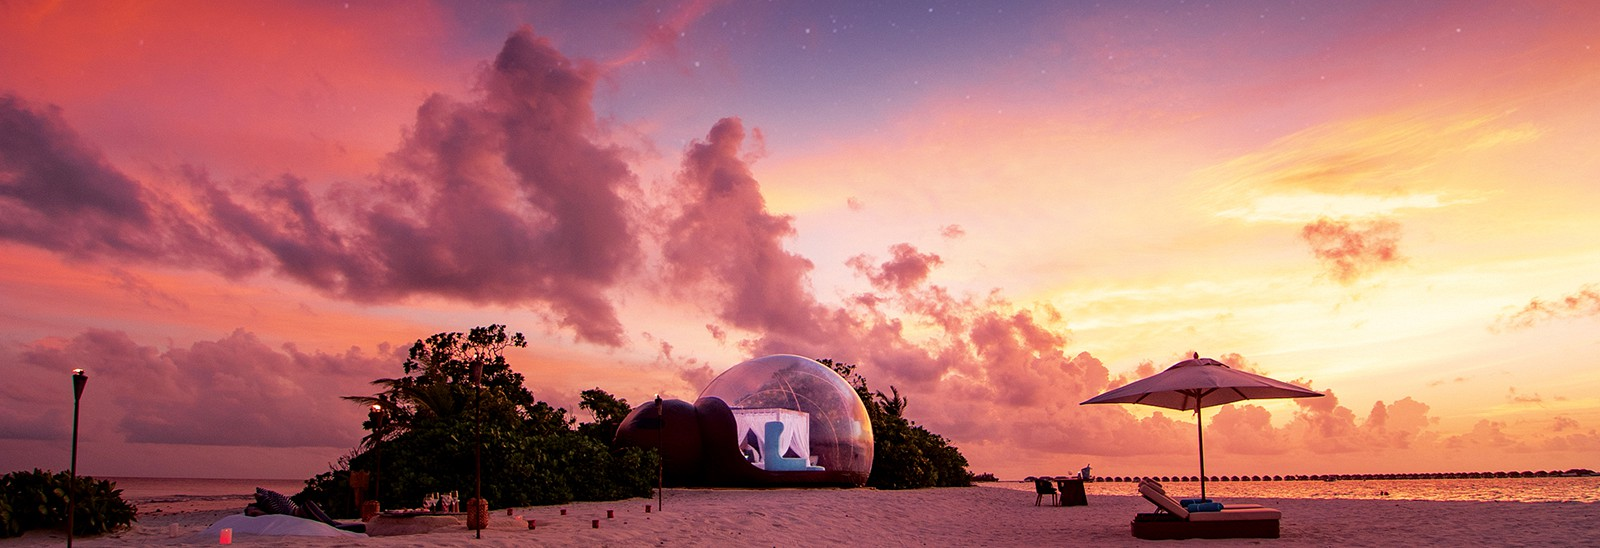 Life in a bubble: glamping arrives in the Maldives